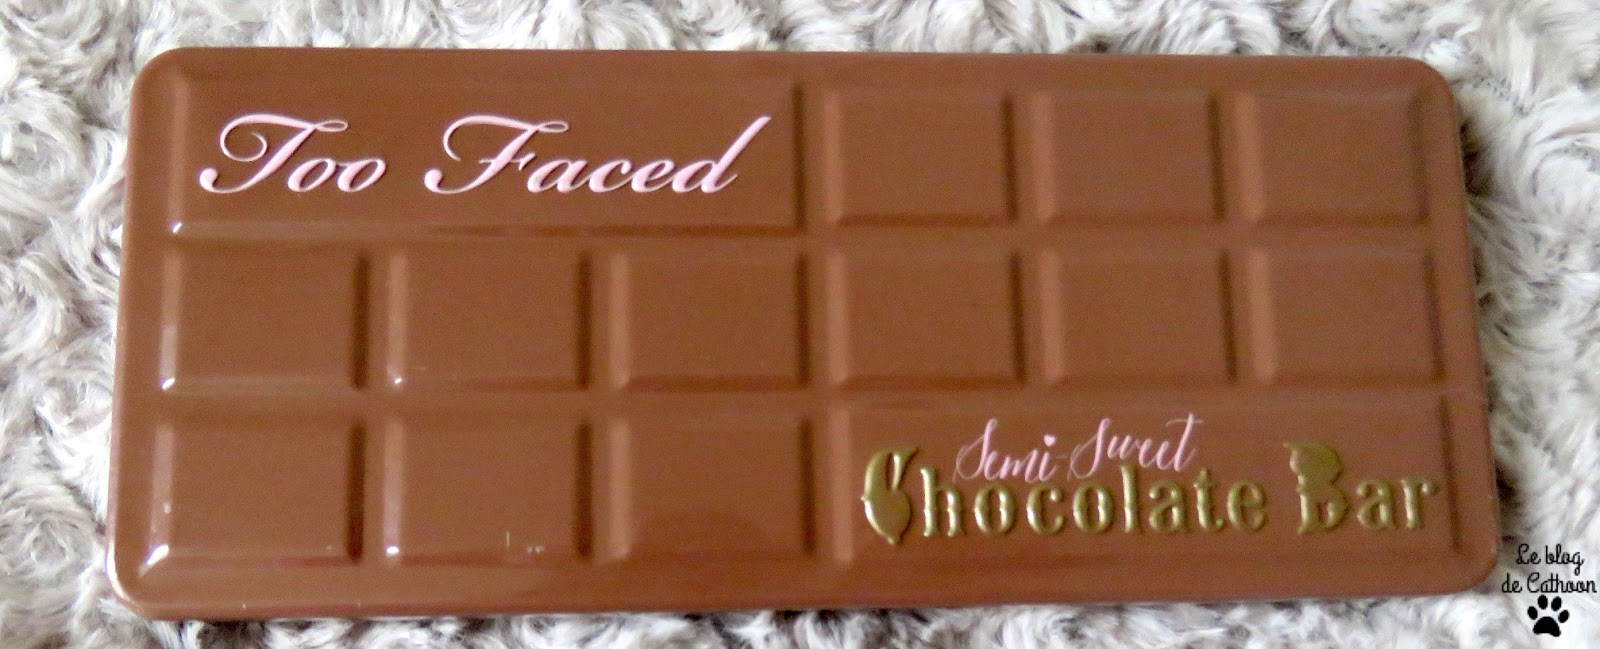 Semi-Sweet Chocolate Bar - Too Faced